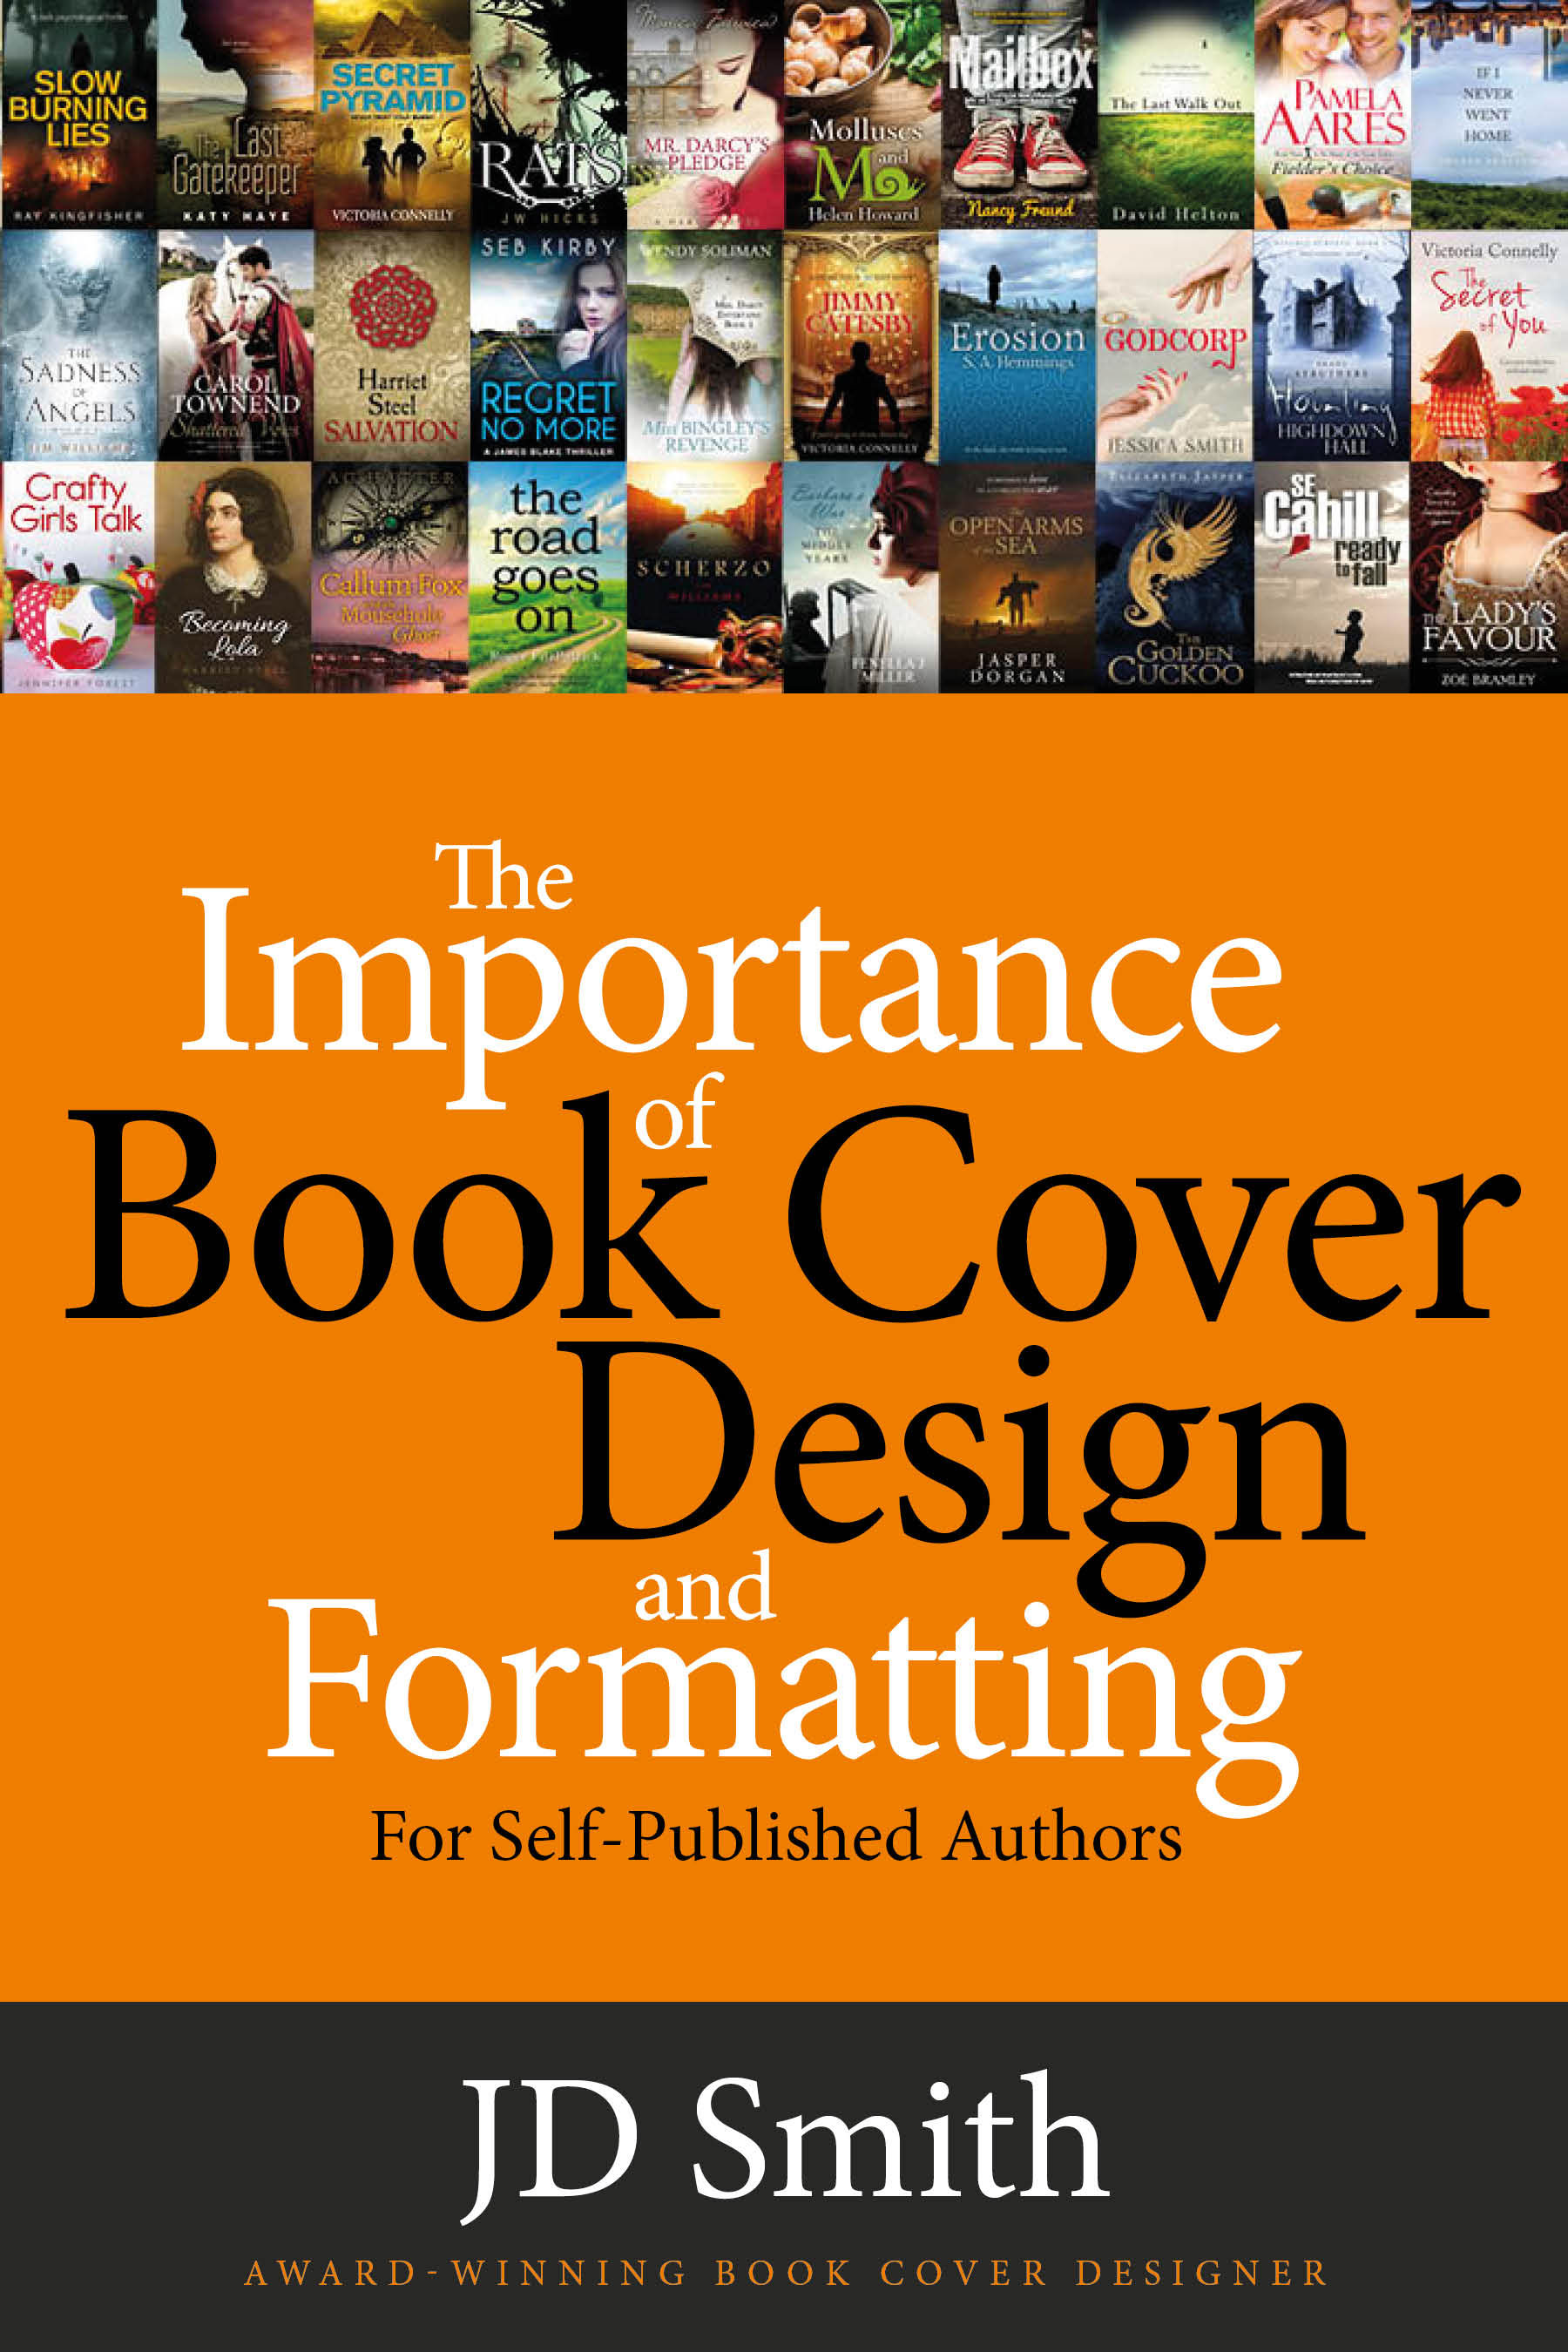 Professional Book Cover Design Uk : Jd smith alliance of independent authors self